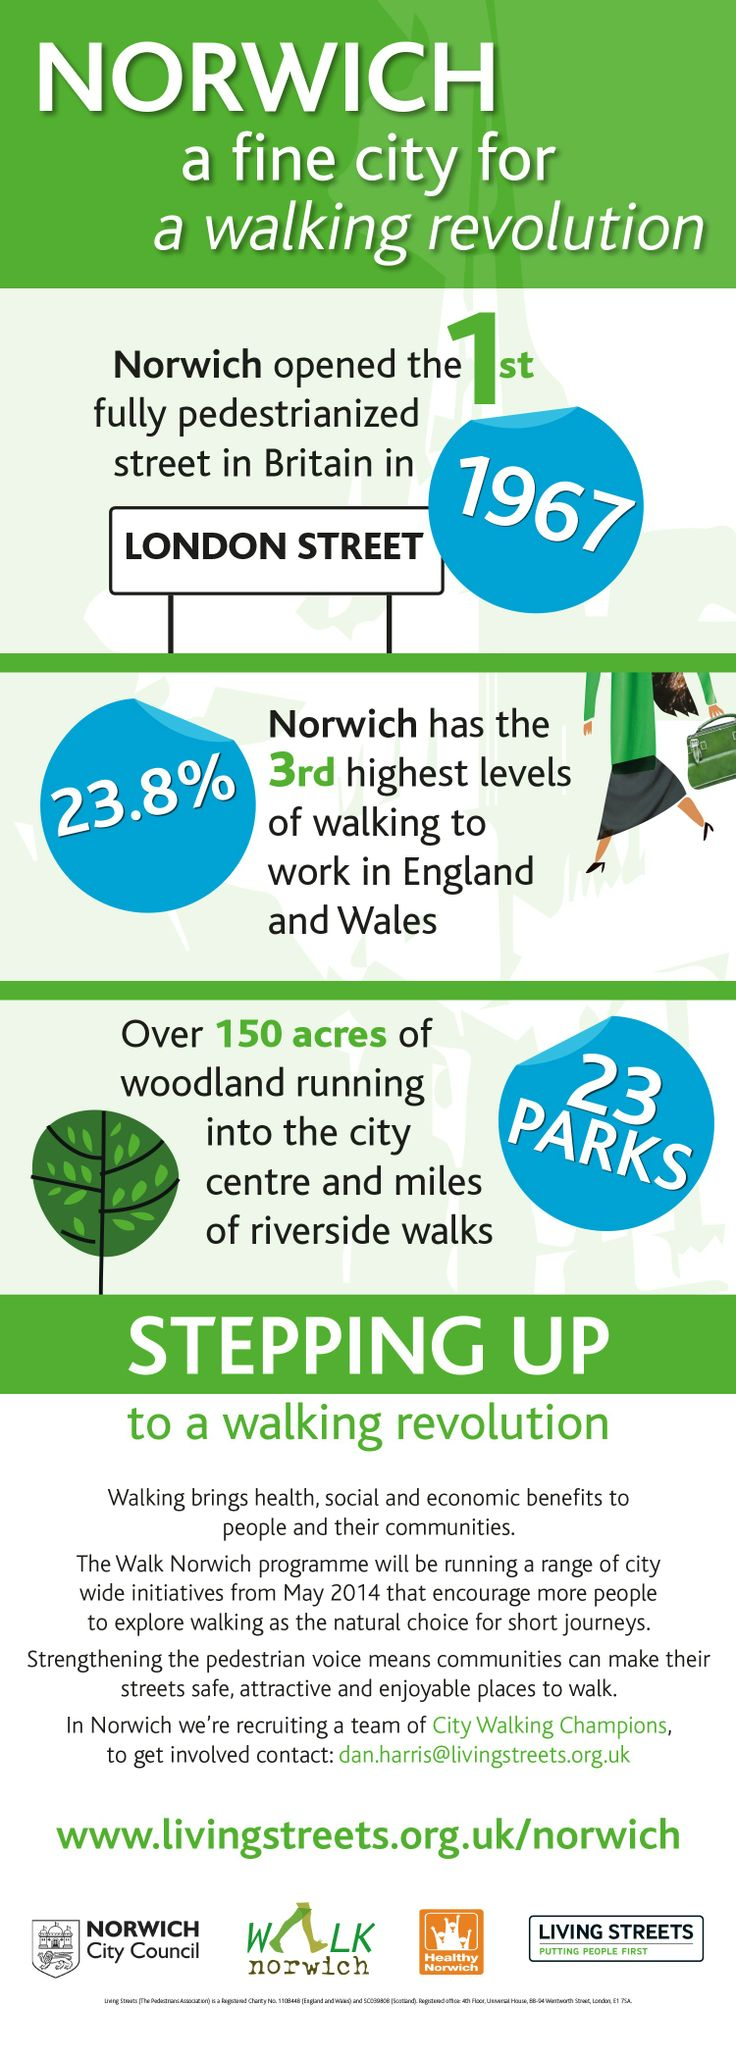 Norwich: A Fine City for a Walking Revolution Infographic - As Norwich approaches the 50th anniversary of the opening of the first fully pedestrian street in the UK, the city is perfectly placed to lead a walking revolution in the UK. Walk Norwich is a 15 month programme of work to commence during National Walking Month 2014. With a broad objective of engaging with schools, workplaces and communities, promises a lot for this Walking City.